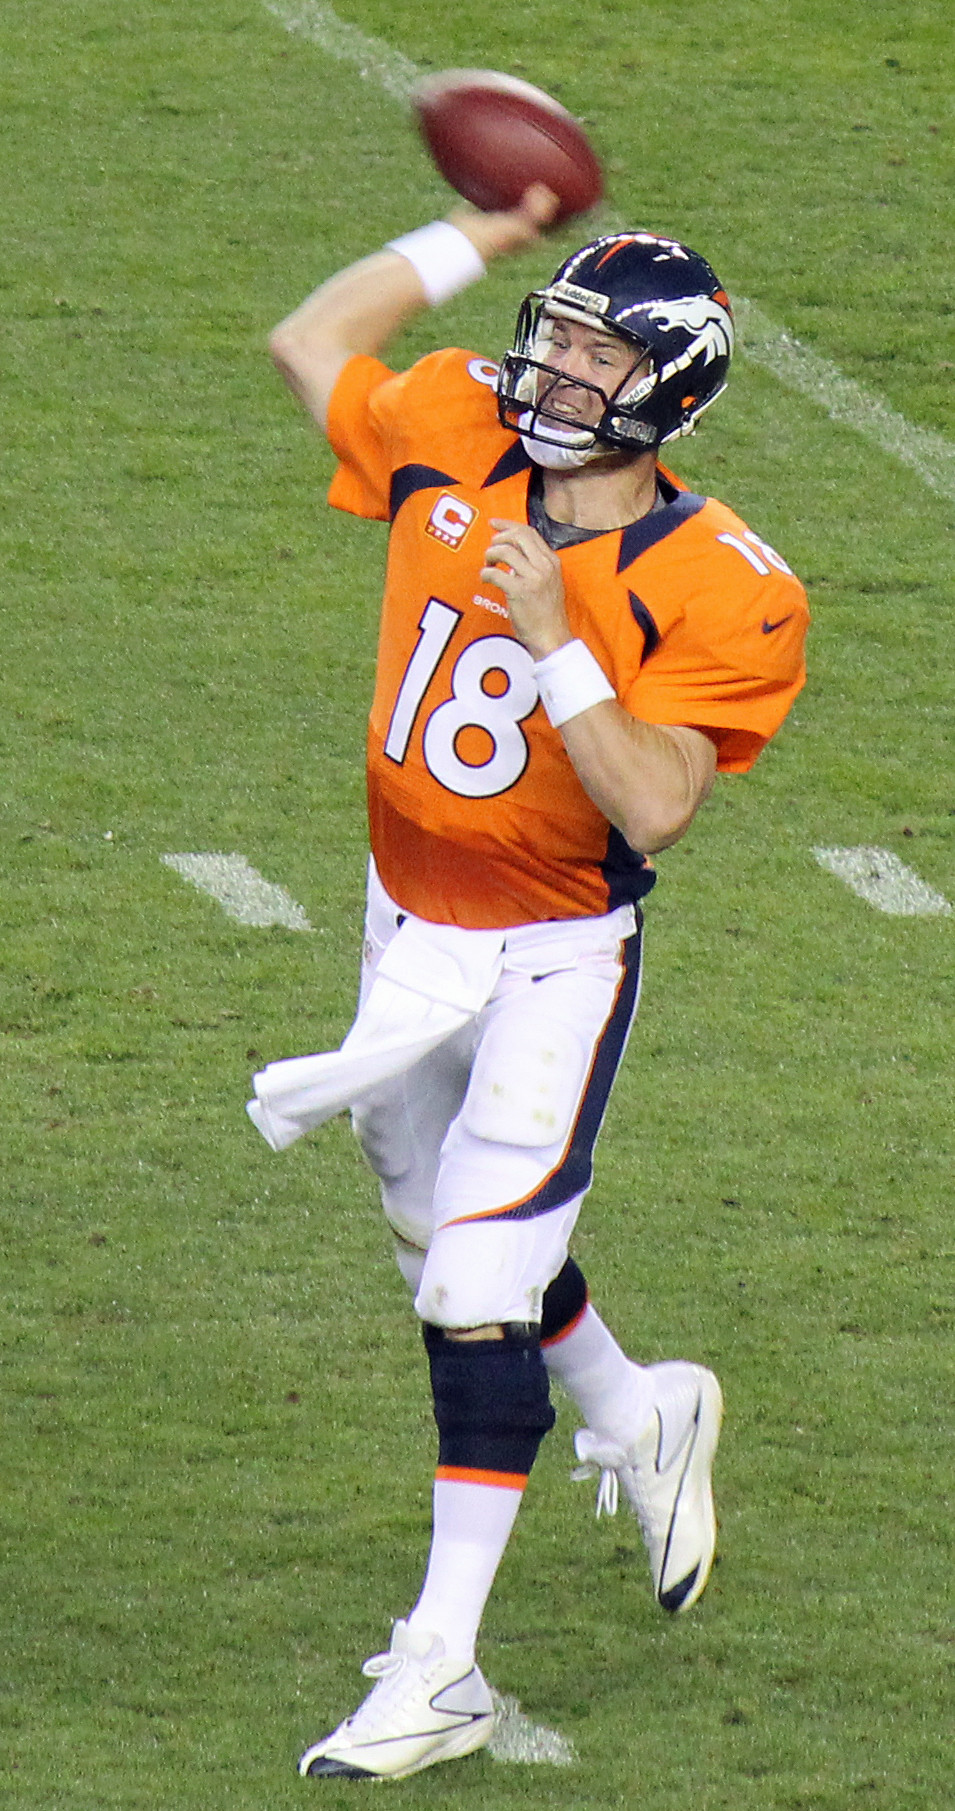 Peyton_Manning_throwing.jpg